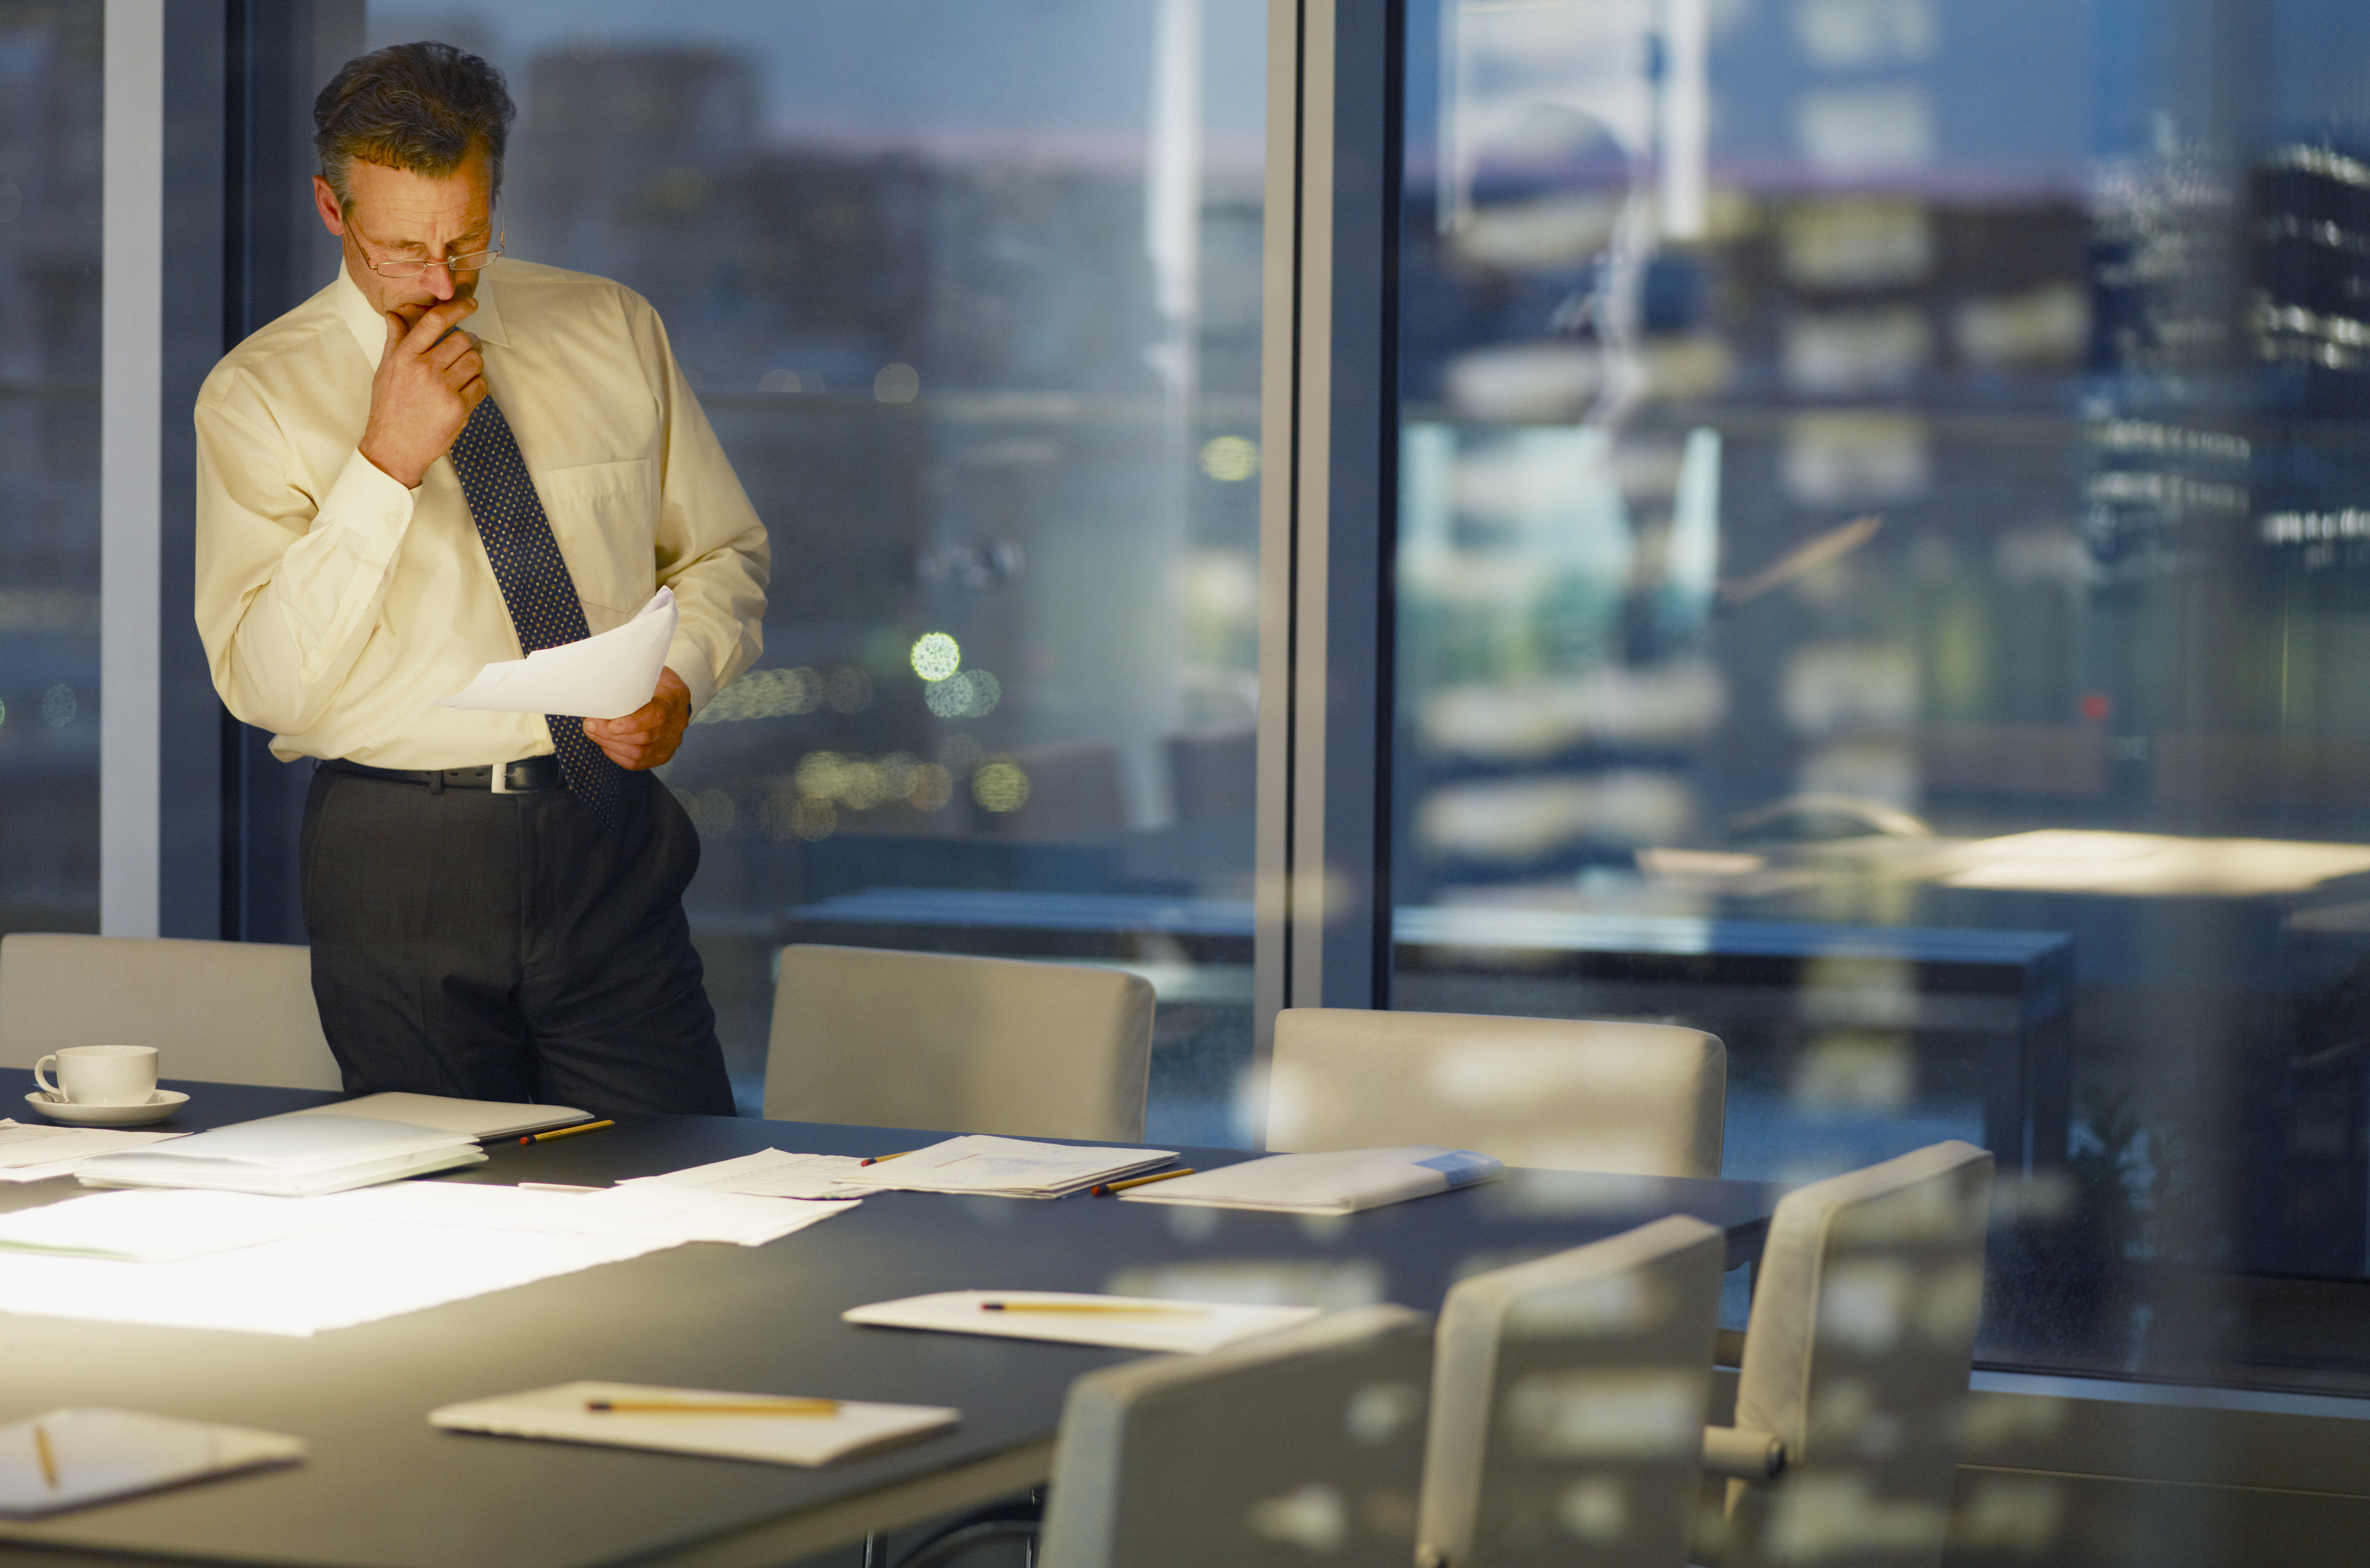 Businessman standing at conference room table at night